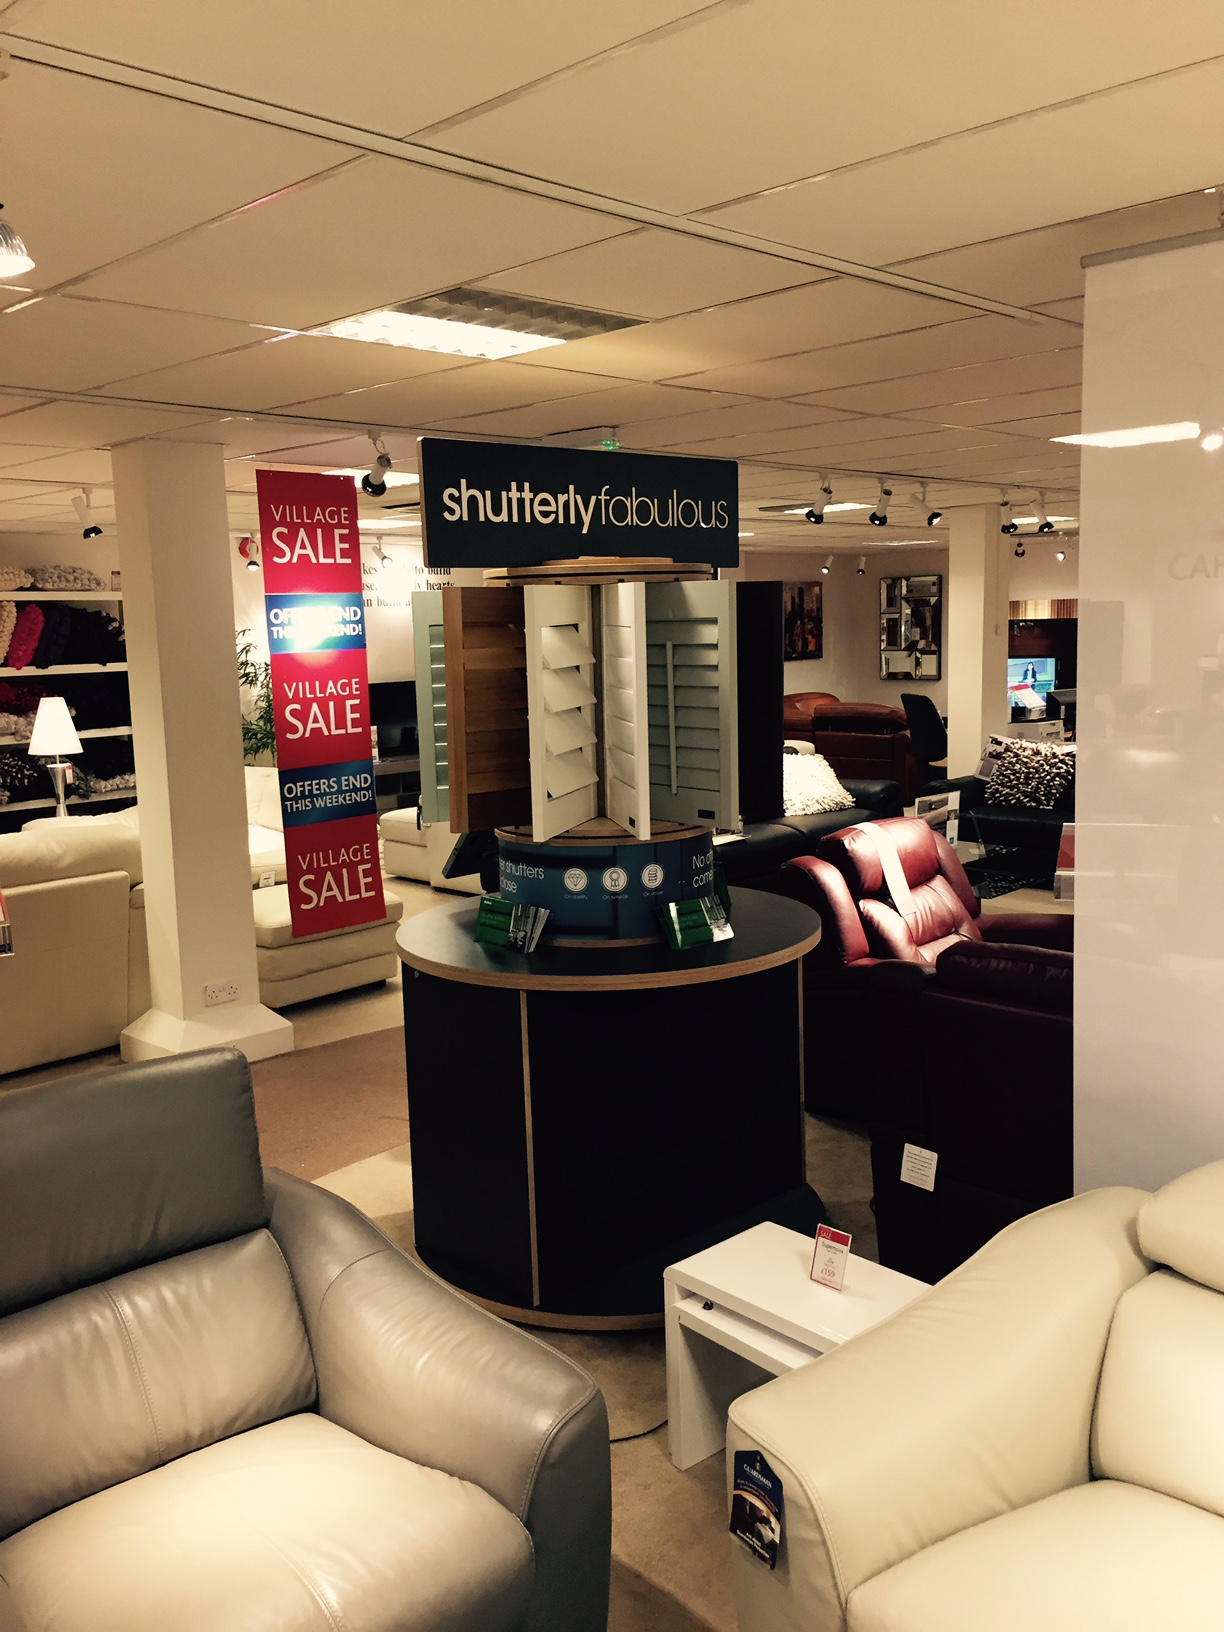 Now In Stores At Furniture Village Blog Shutterly Fabulous